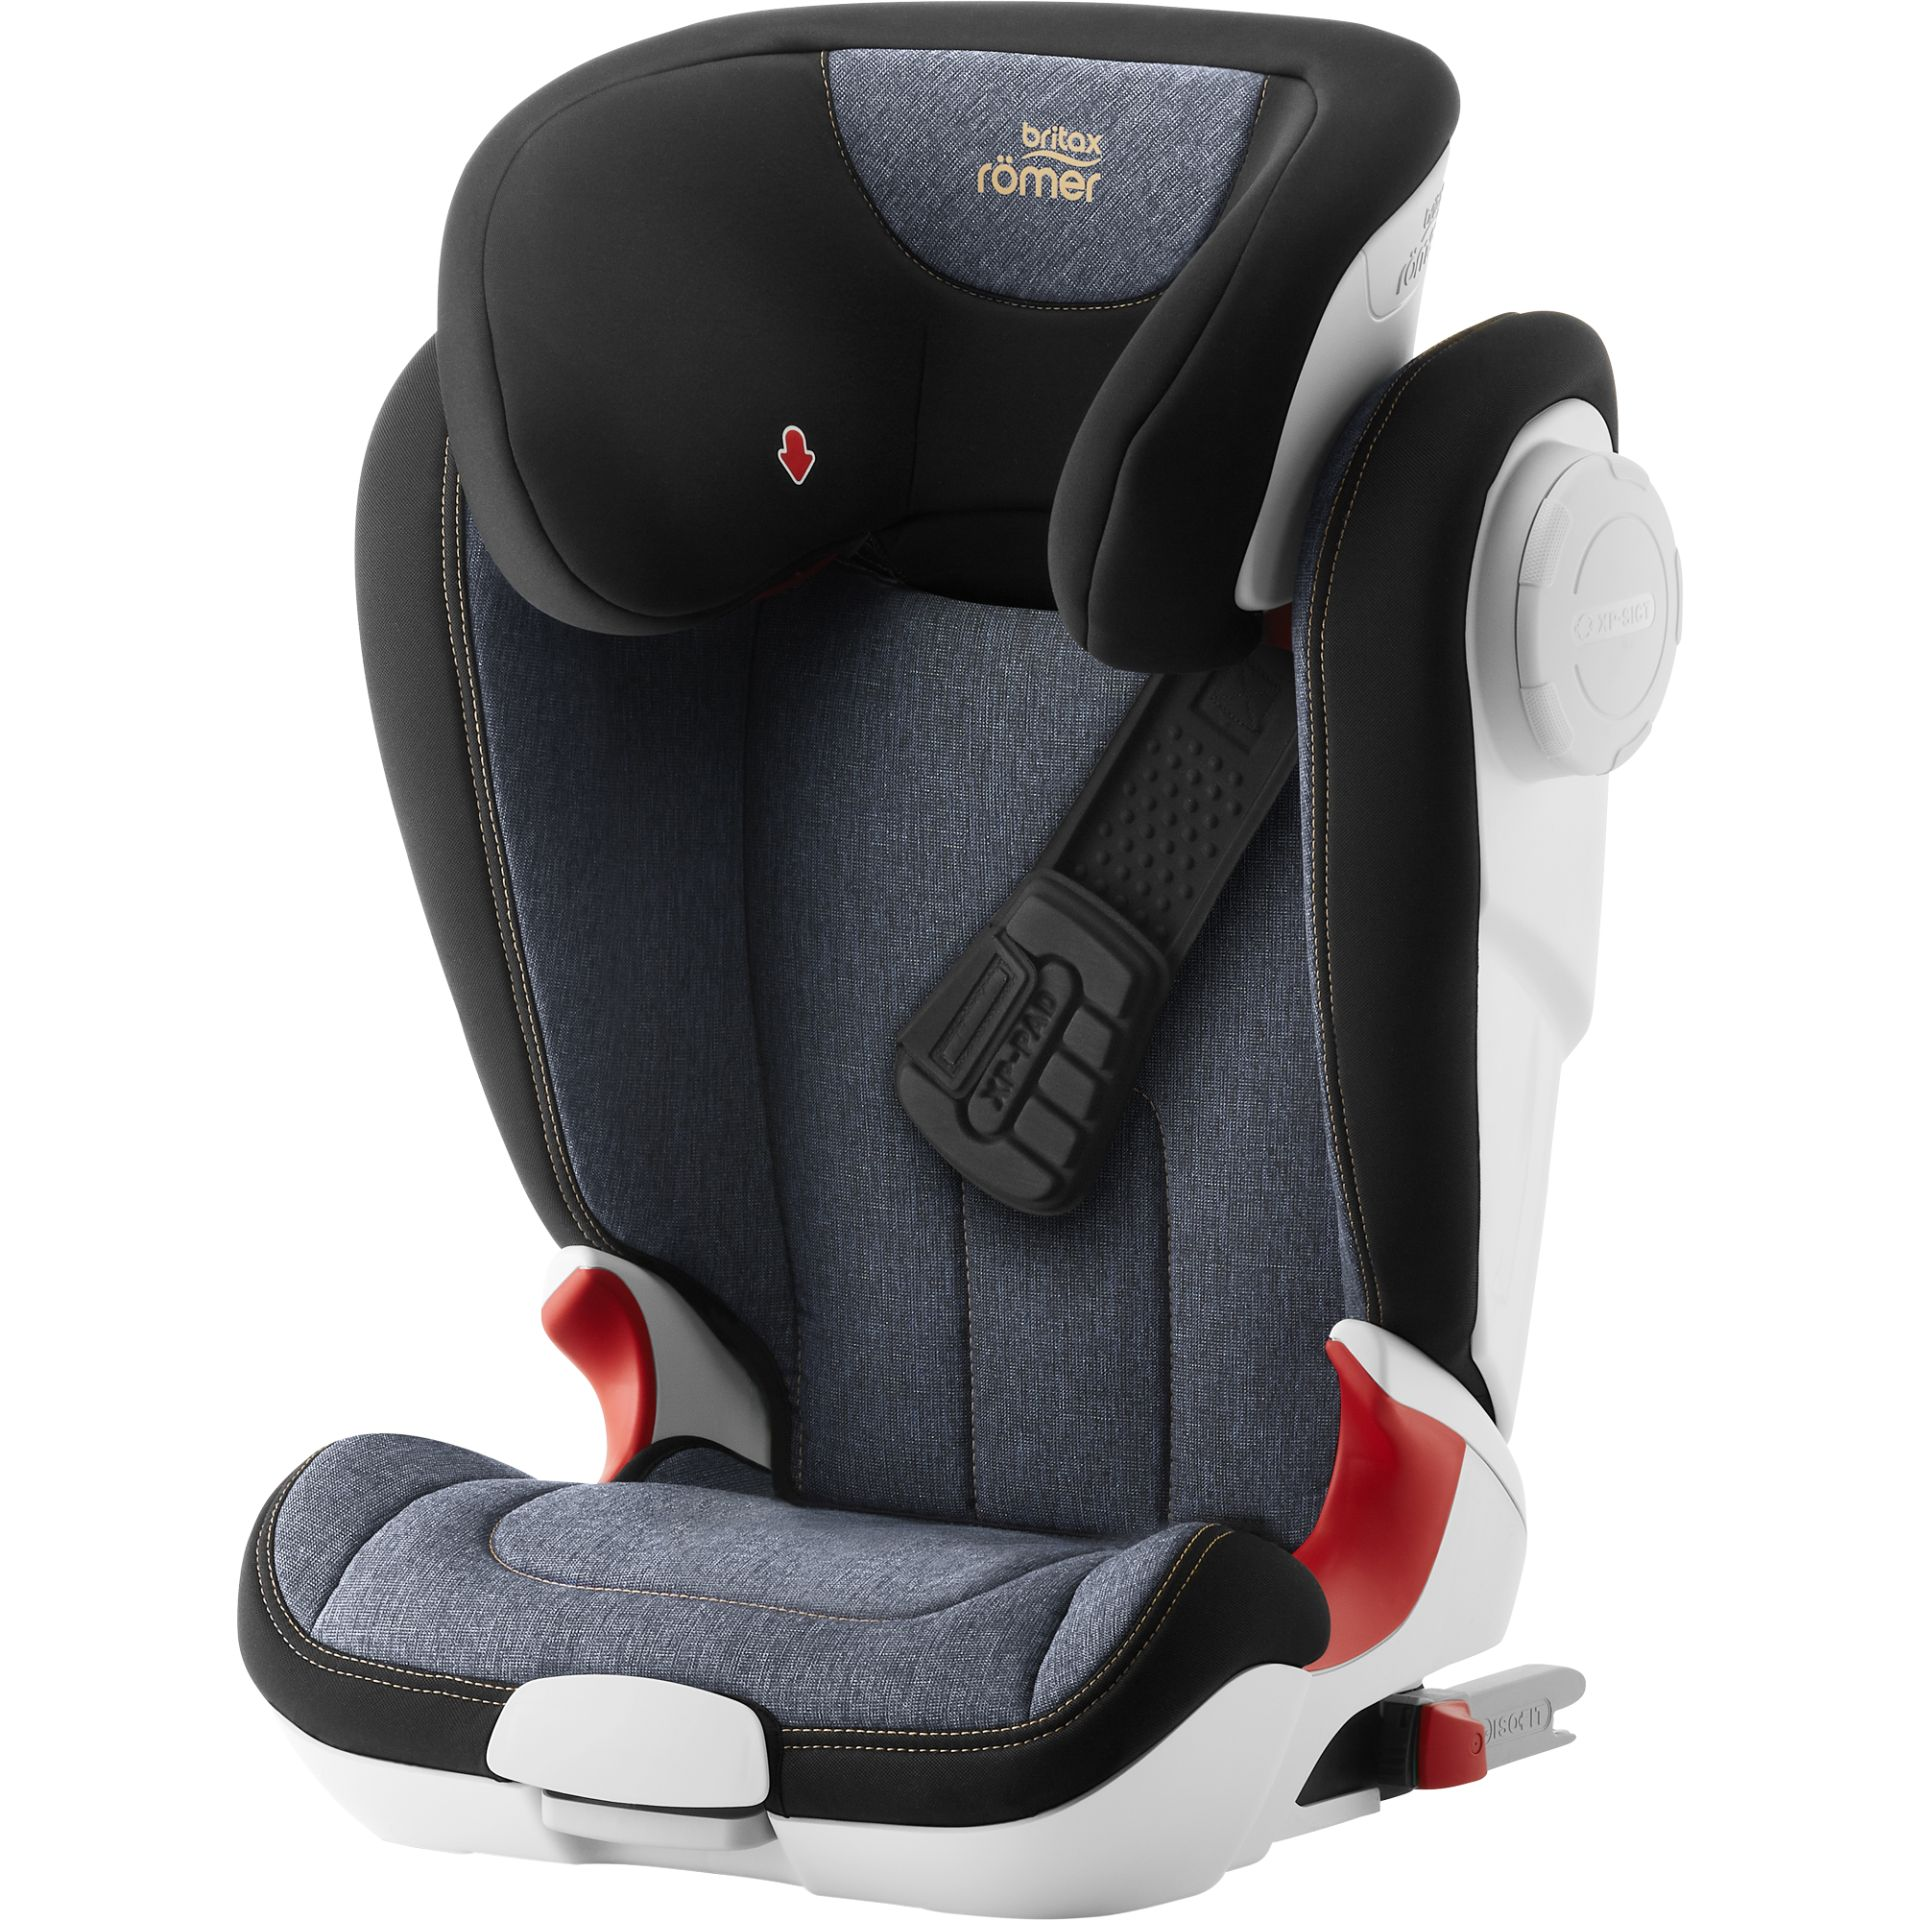 britax r mer child car seat kidfix xp sict 2019 blue. Black Bedroom Furniture Sets. Home Design Ideas